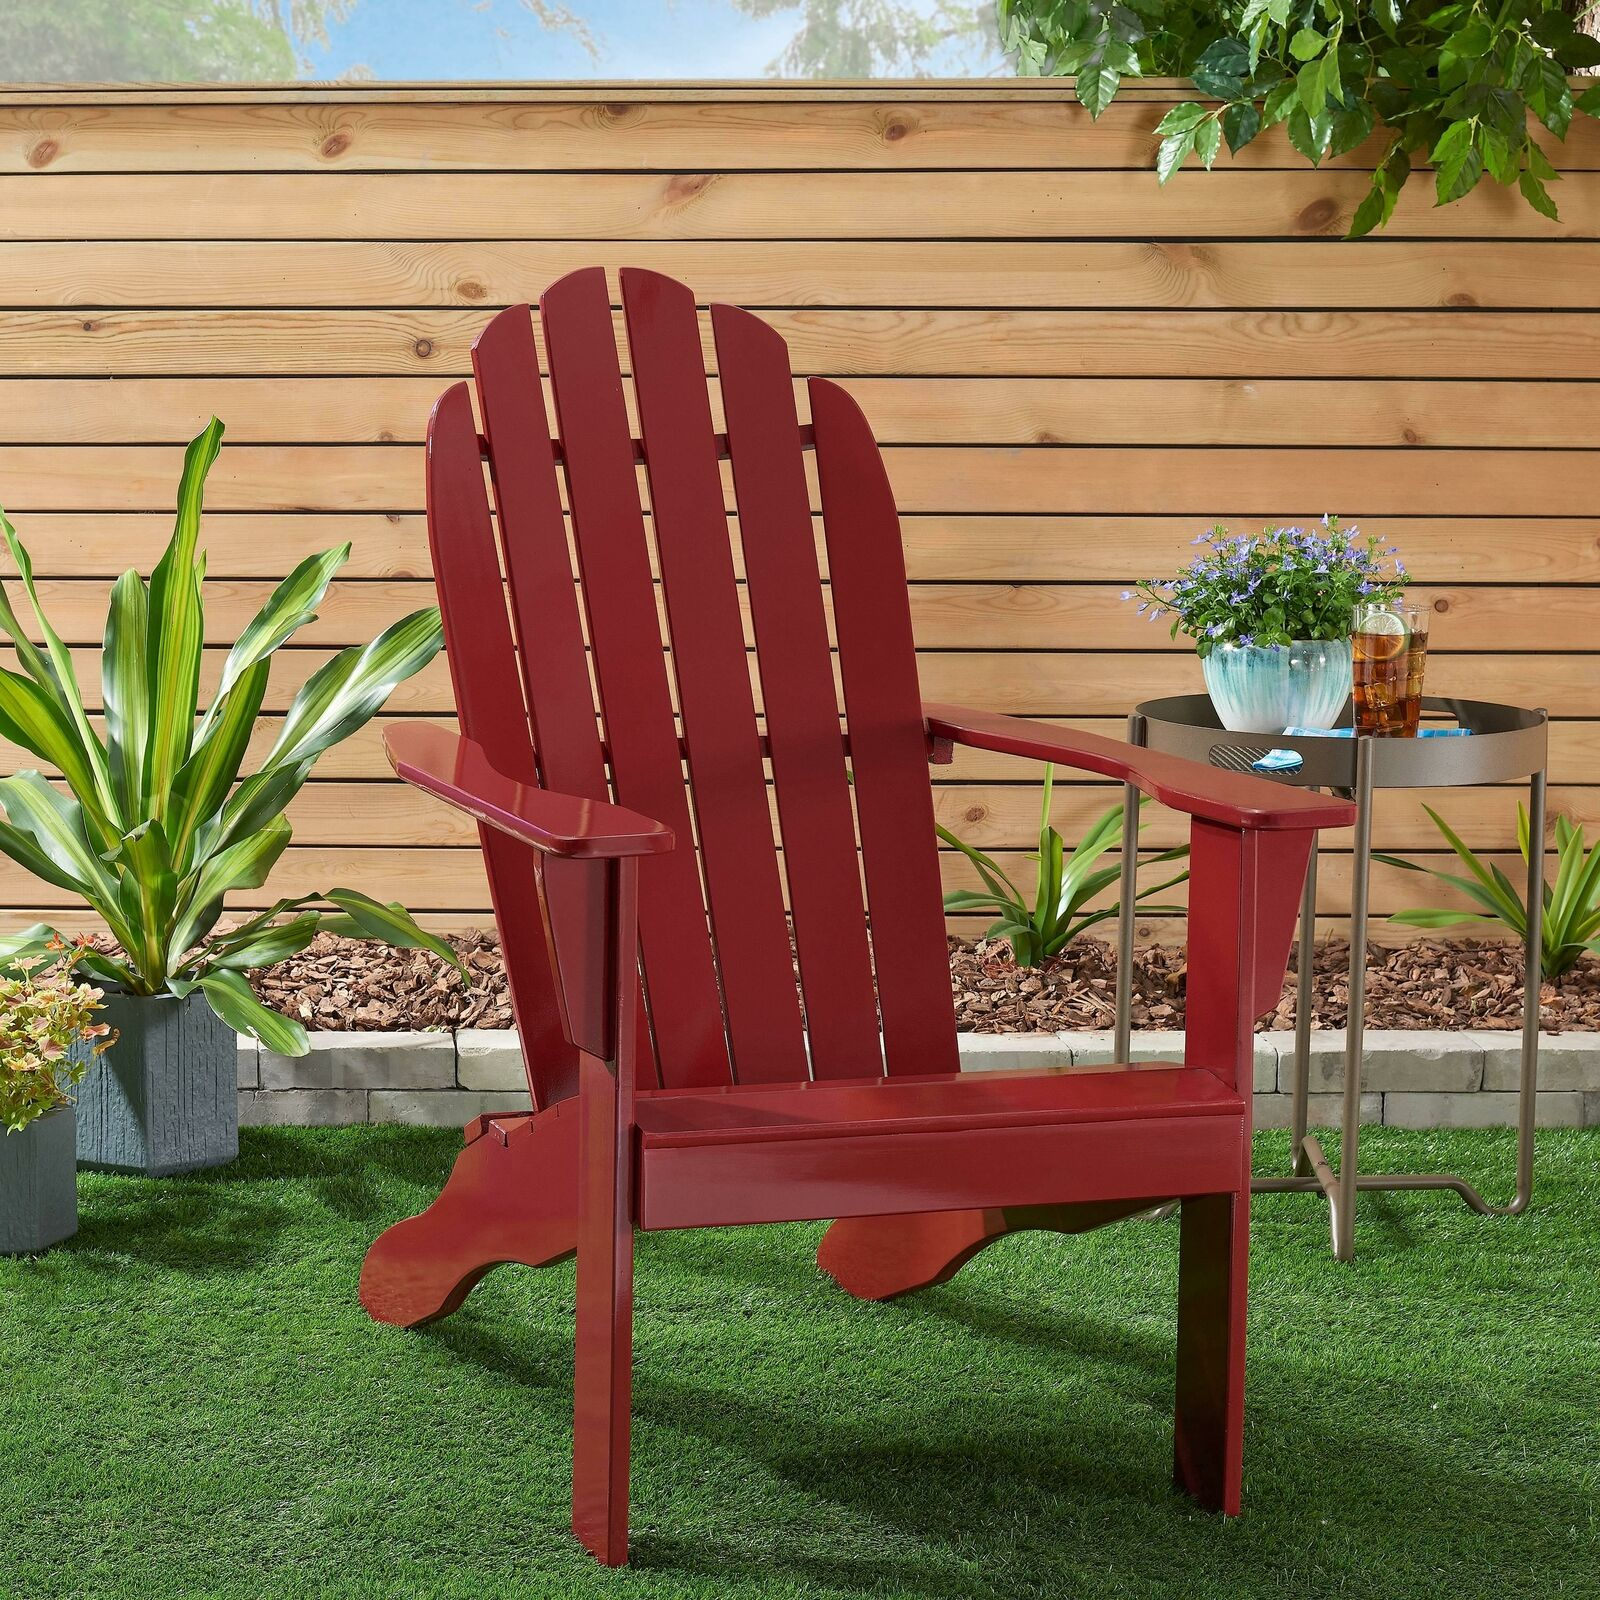 Picture of: Openbox Songsen Fashion Outdoor Wood Adirondack Chairs Muskoka Chair Patio Deck For Sale Online Ebay